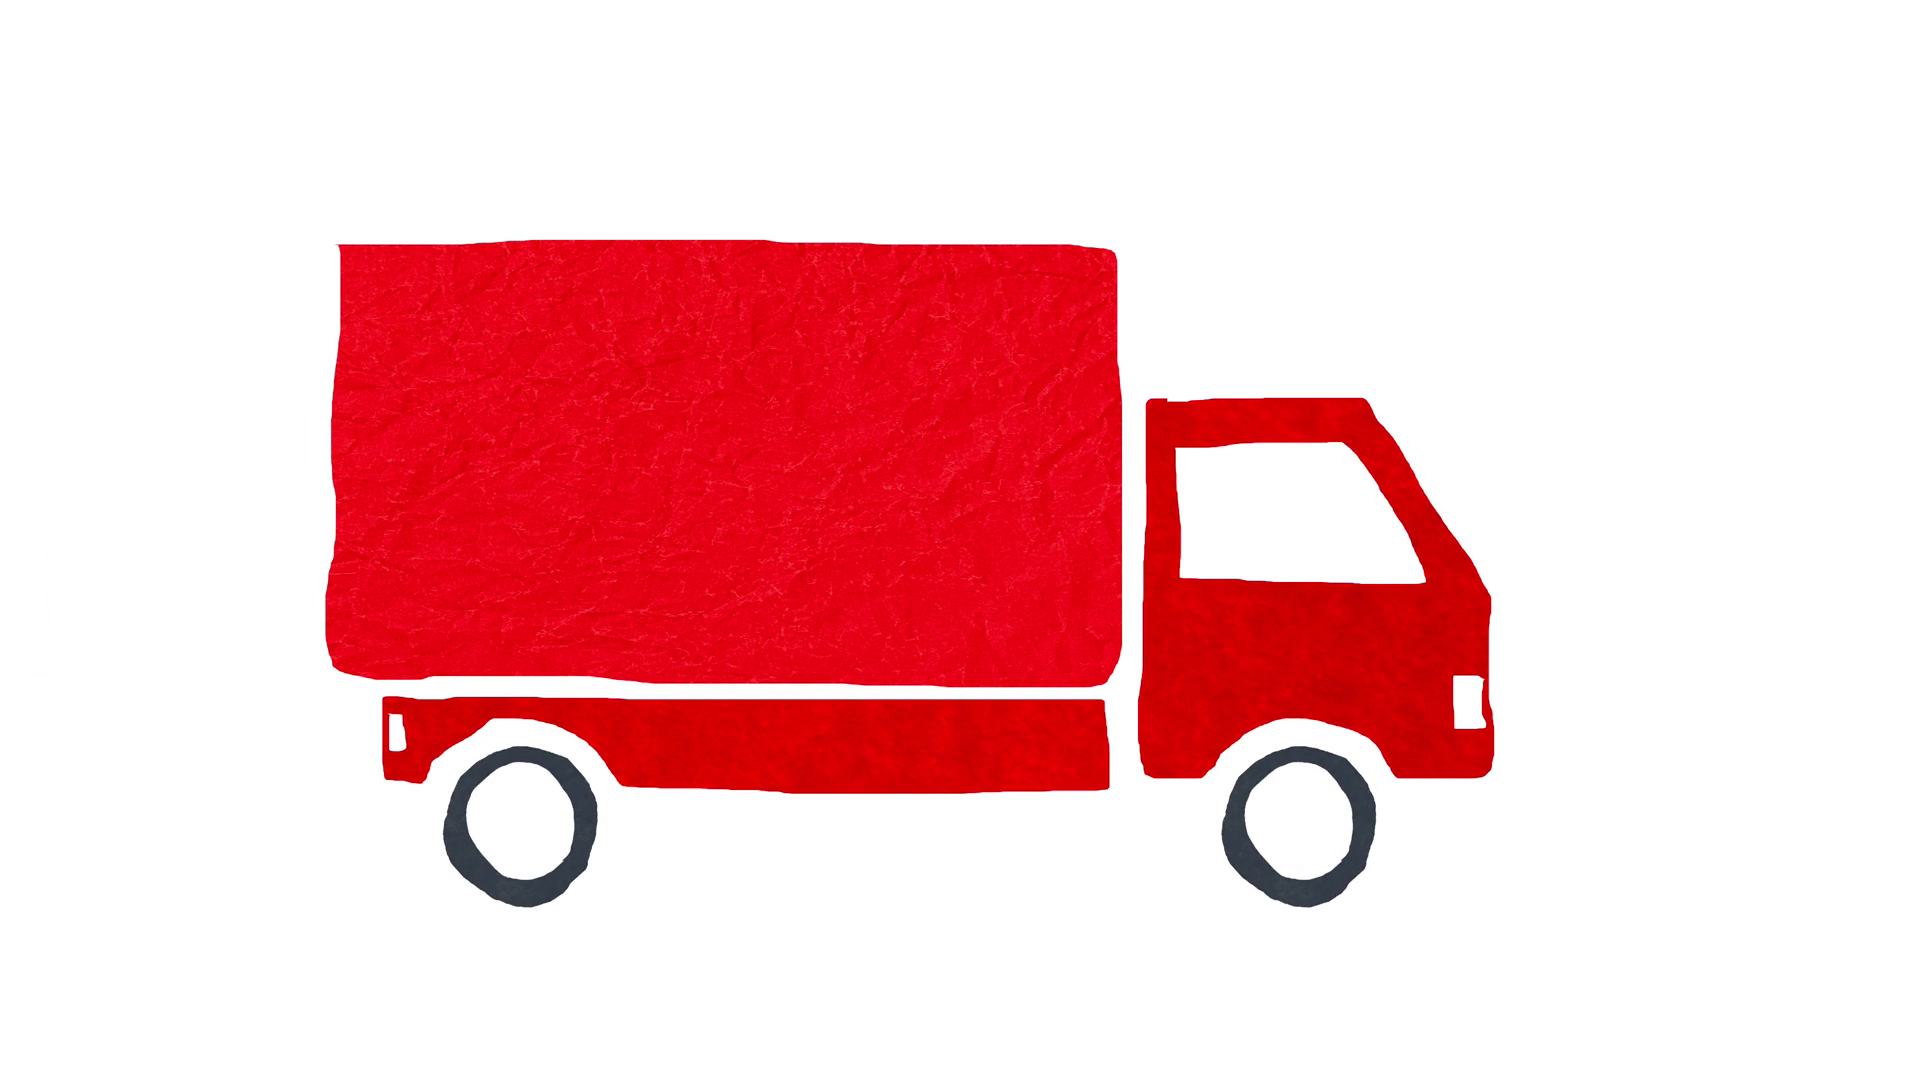 4K Red Truck Animation Stop Motion on White Background Cartoon Paper Craft  Motion Background.